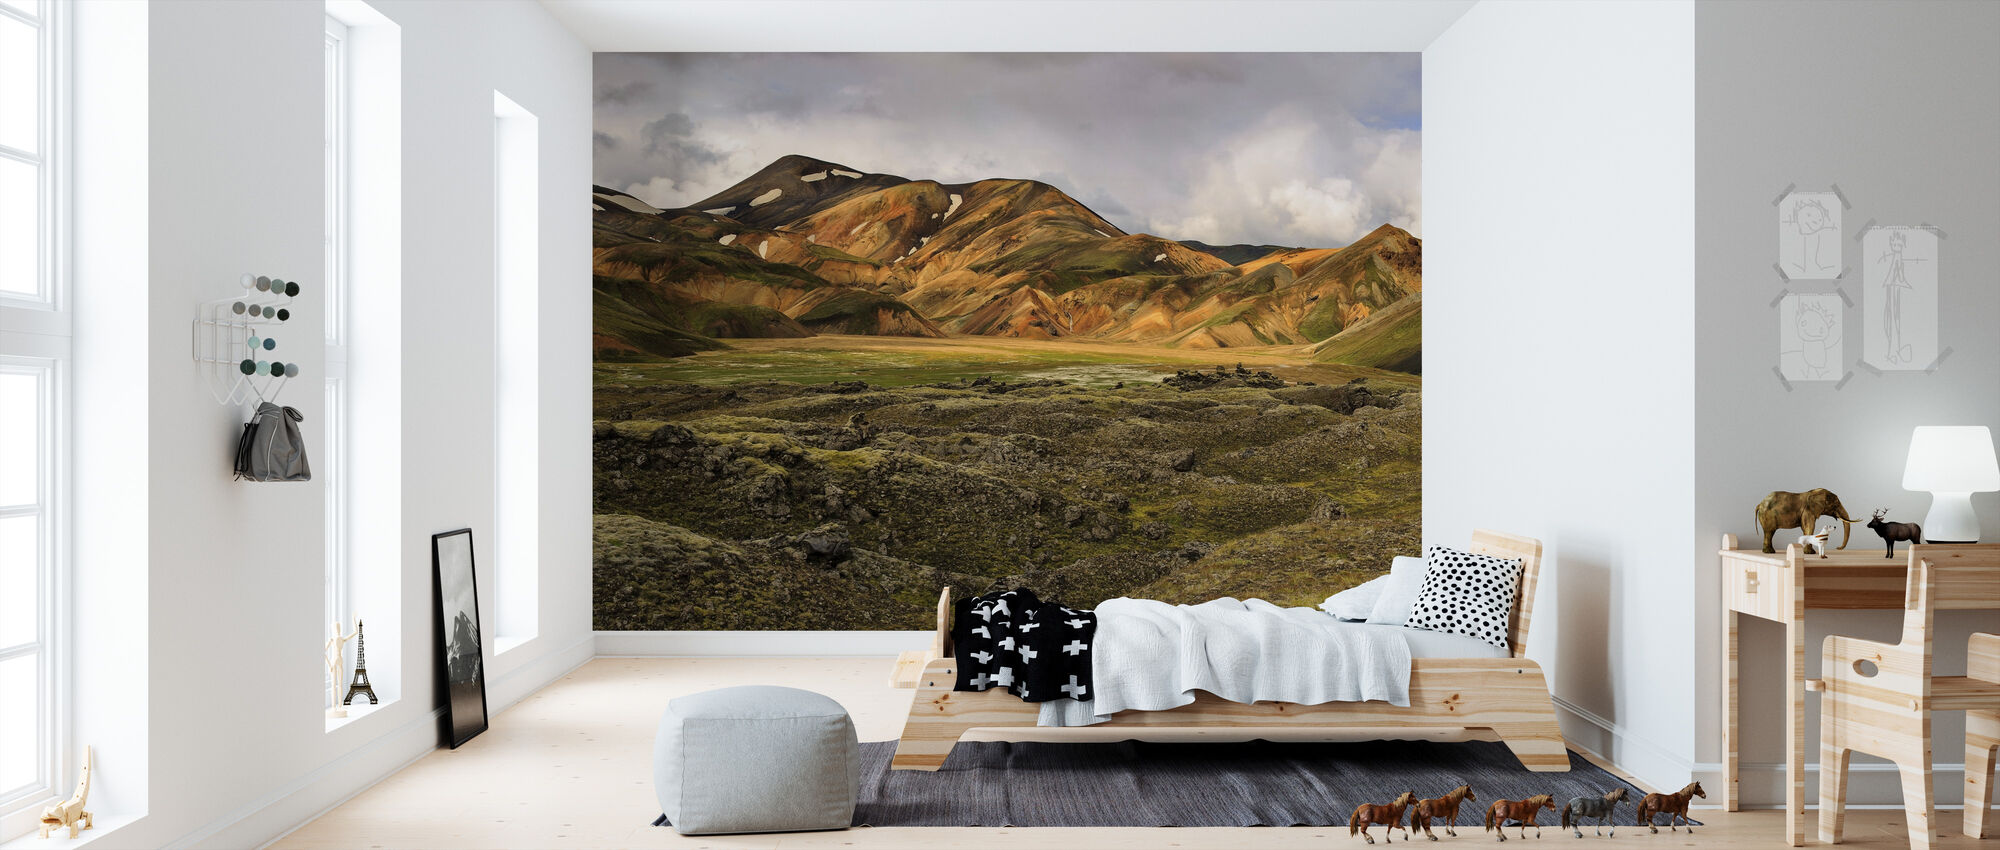 sulfur tinted highlands fototapete nach ma photowall. Black Bedroom Furniture Sets. Home Design Ideas